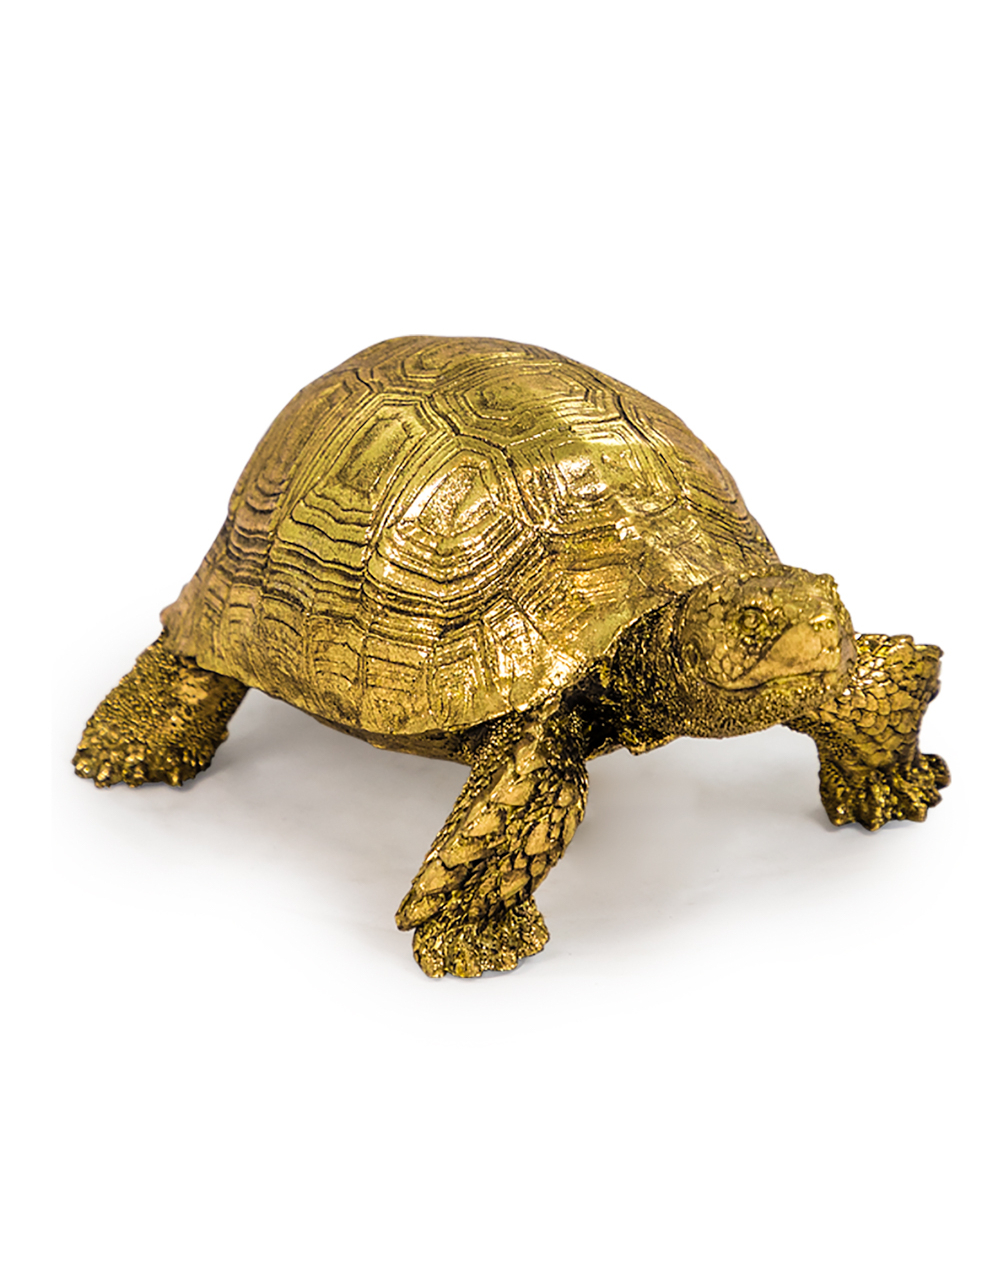 Small Gold Tortoise